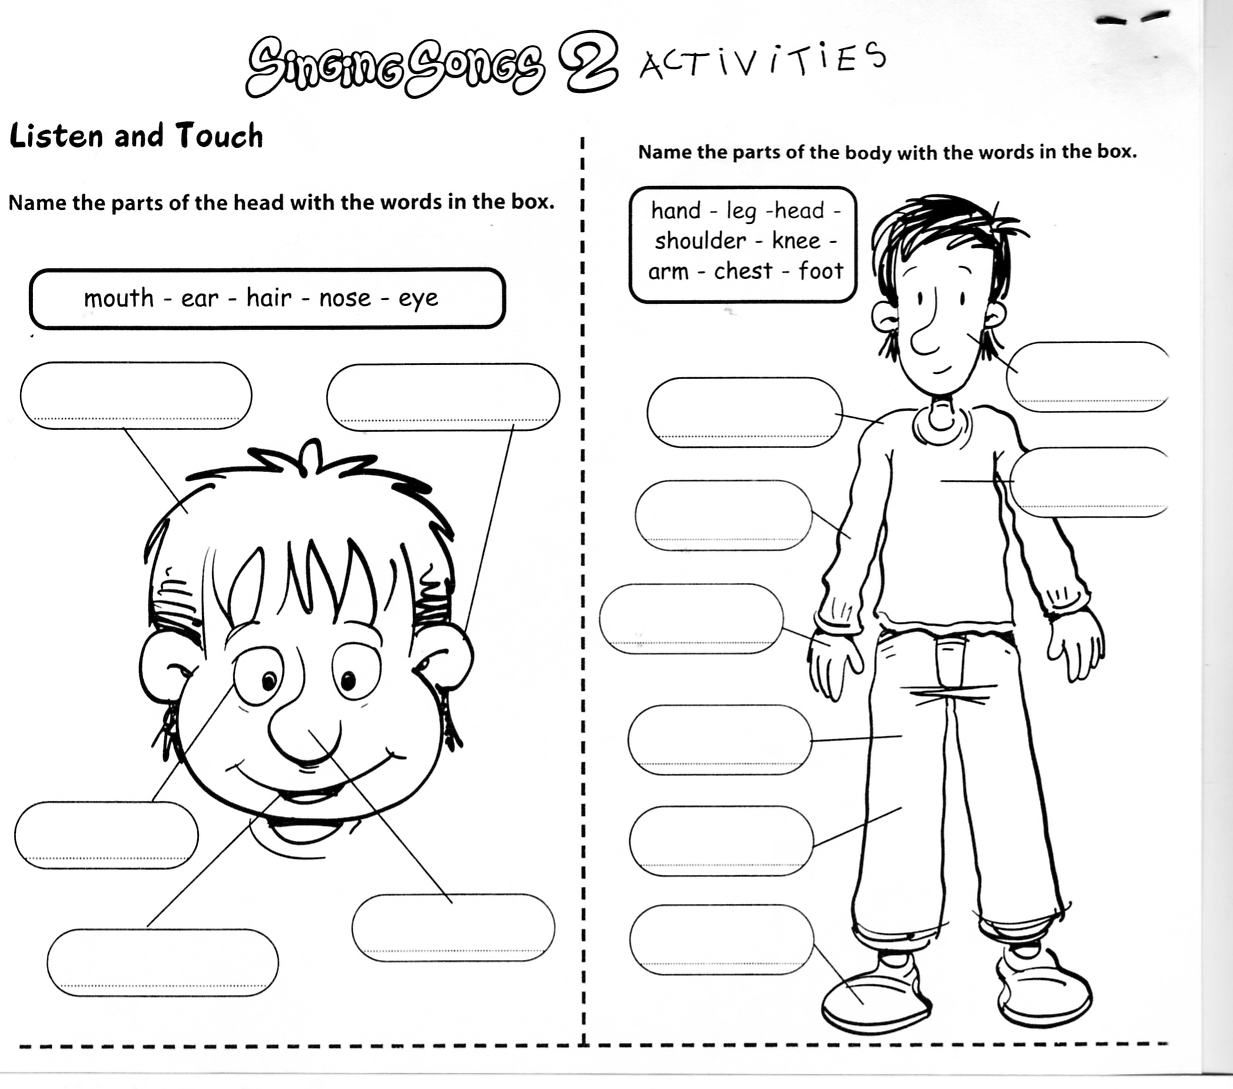 Worksheets Human Body Worksheets learningenglish esl body worksheets school stuff pinterest worksheets